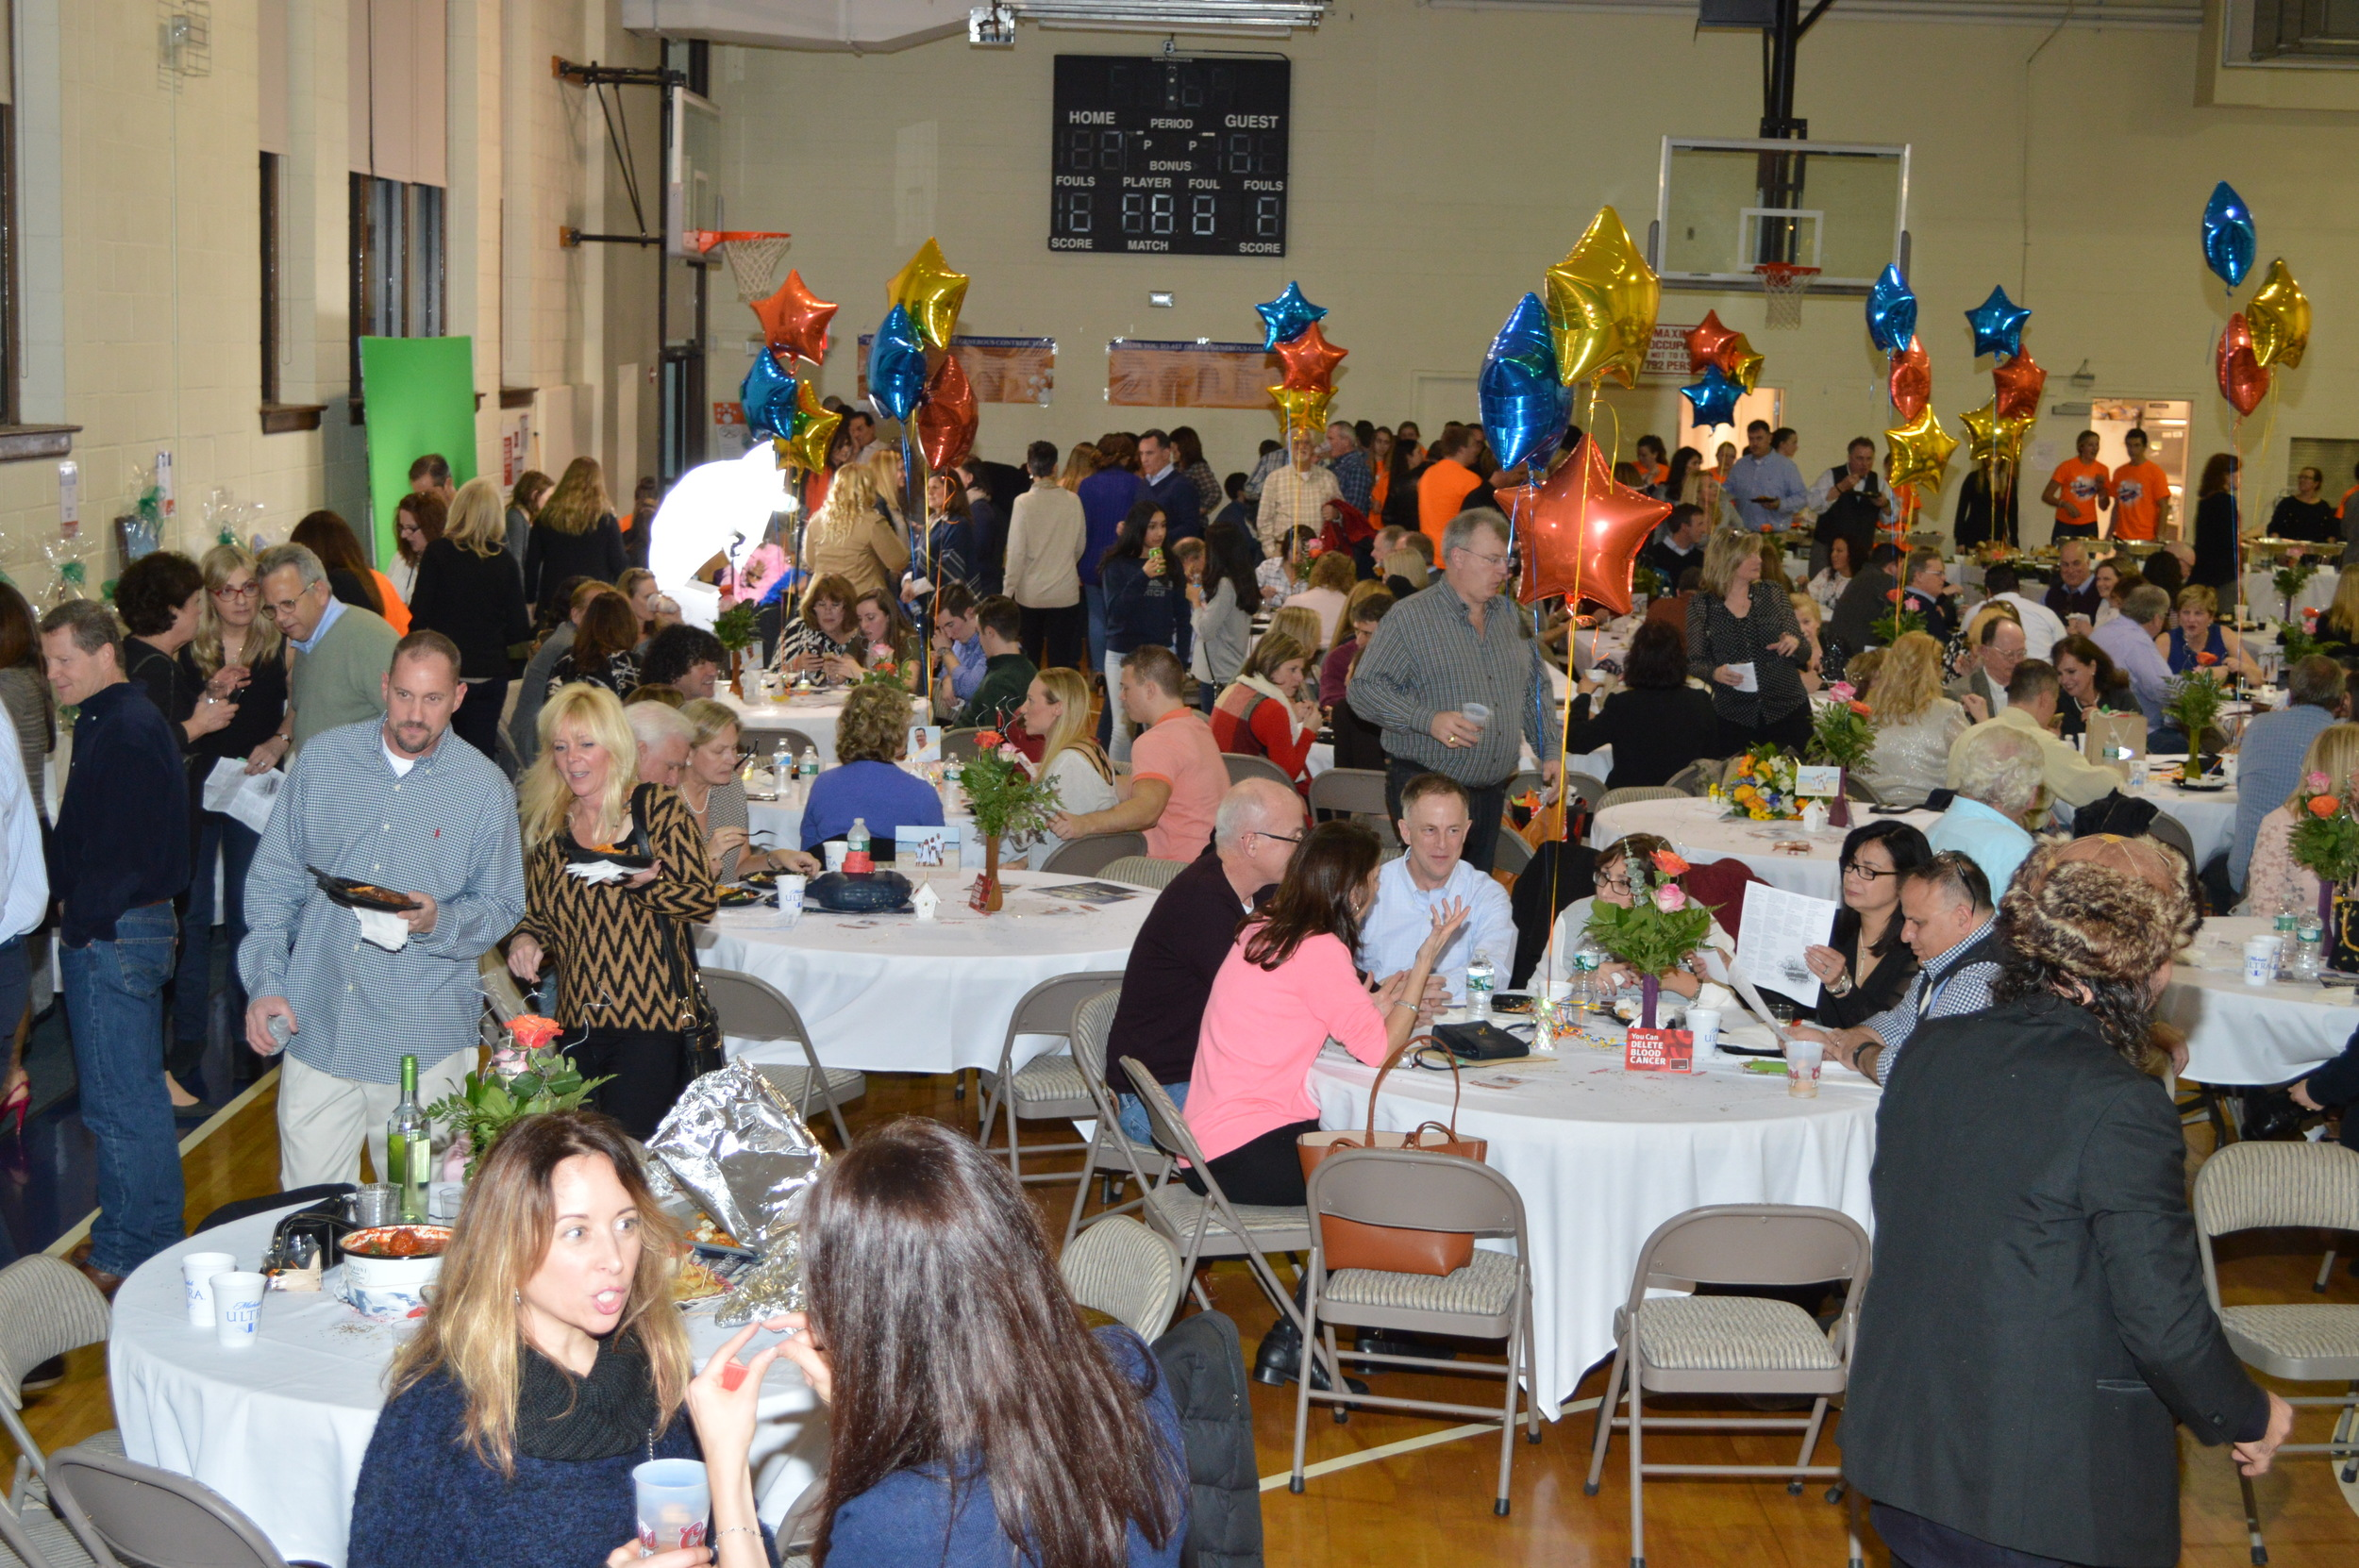 """More than 350 people attended the """"Bongiorno Blast"""" on Saturday, raising $68,000 to help pay for John and Michele Bongiorno's medical bills. (Photo by Alan Pearlman)"""